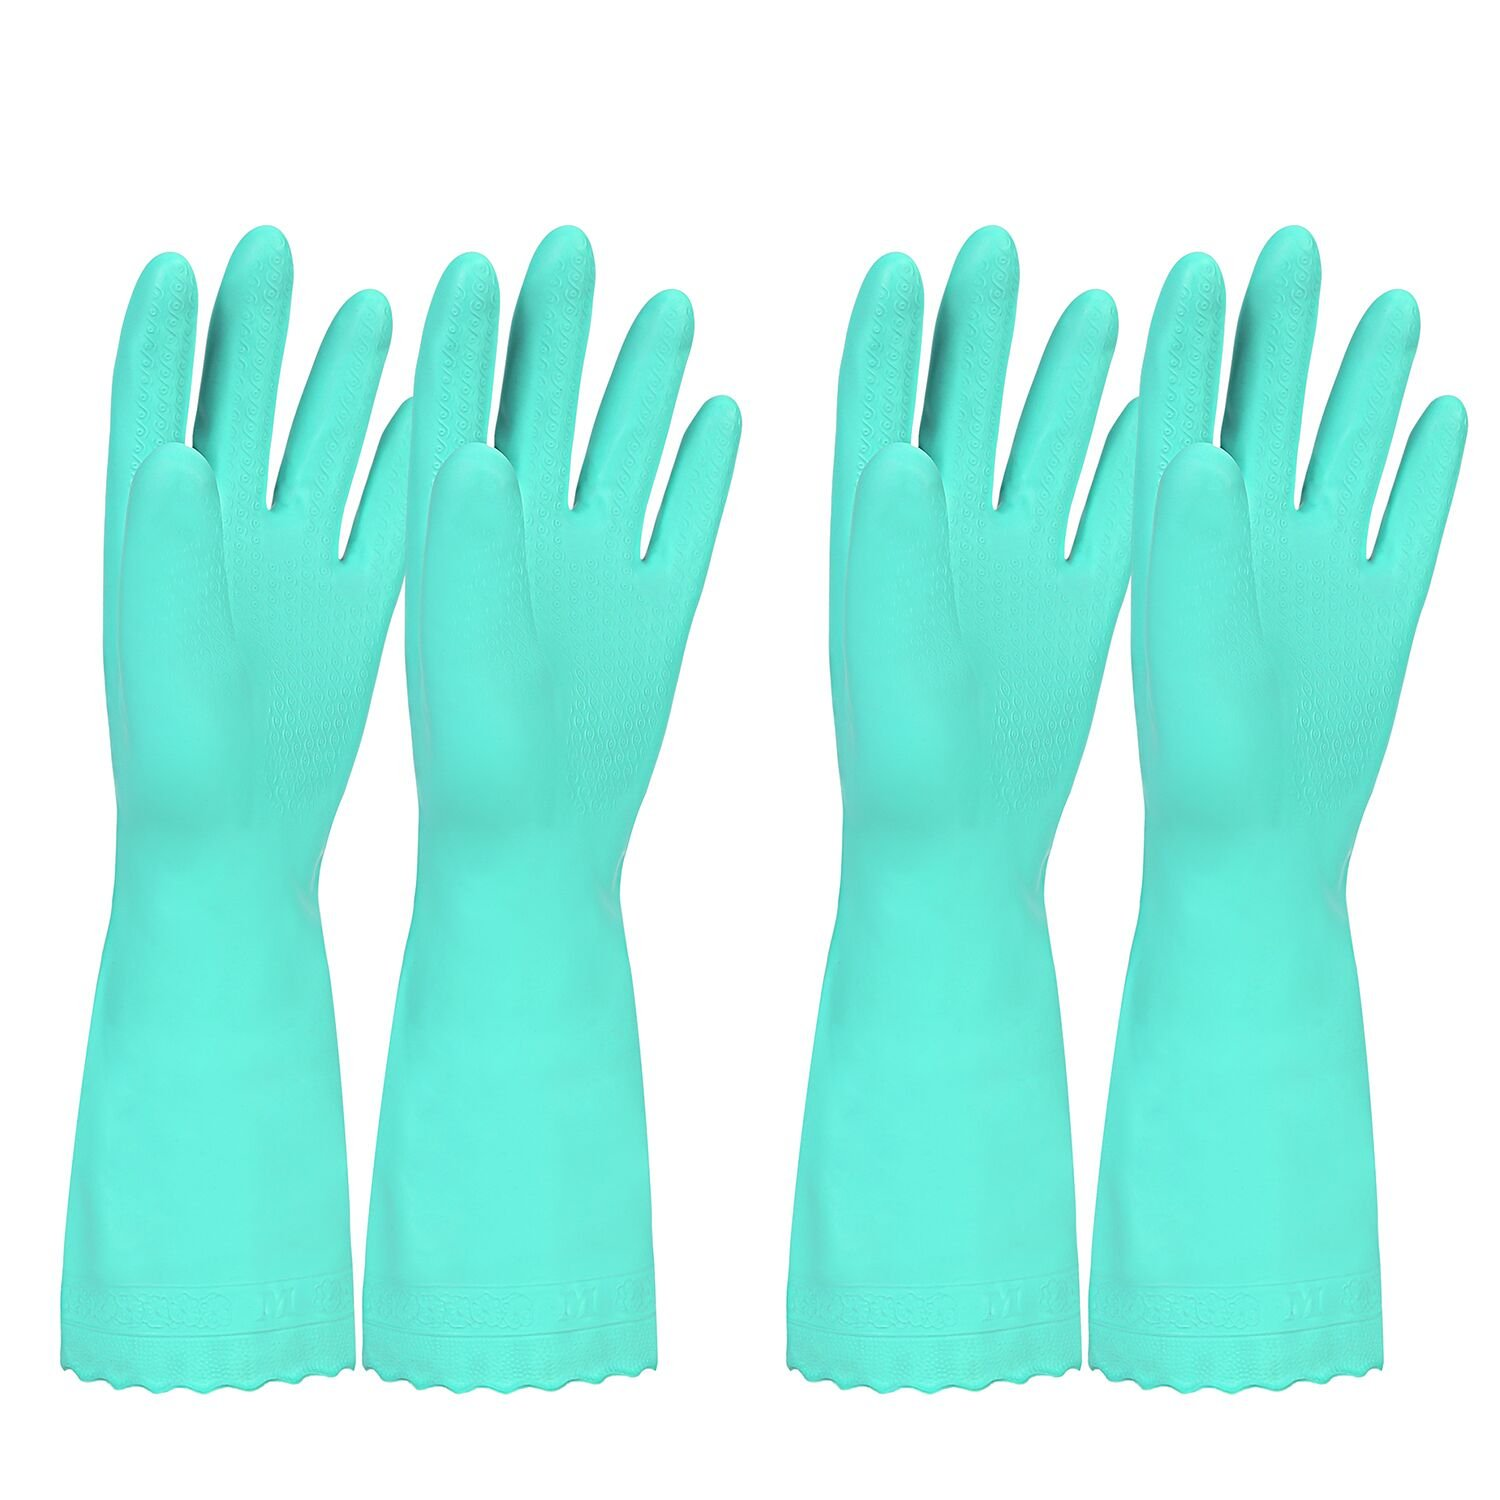 Elgood Household Gloves,Latex Free Vinyl Cotton Lining Non- Slip Swirl Grip Gloves for Kithen Dishwashing Laundry Cleaning 2 Pairs (Blue, M) by Elgood (Image #1)